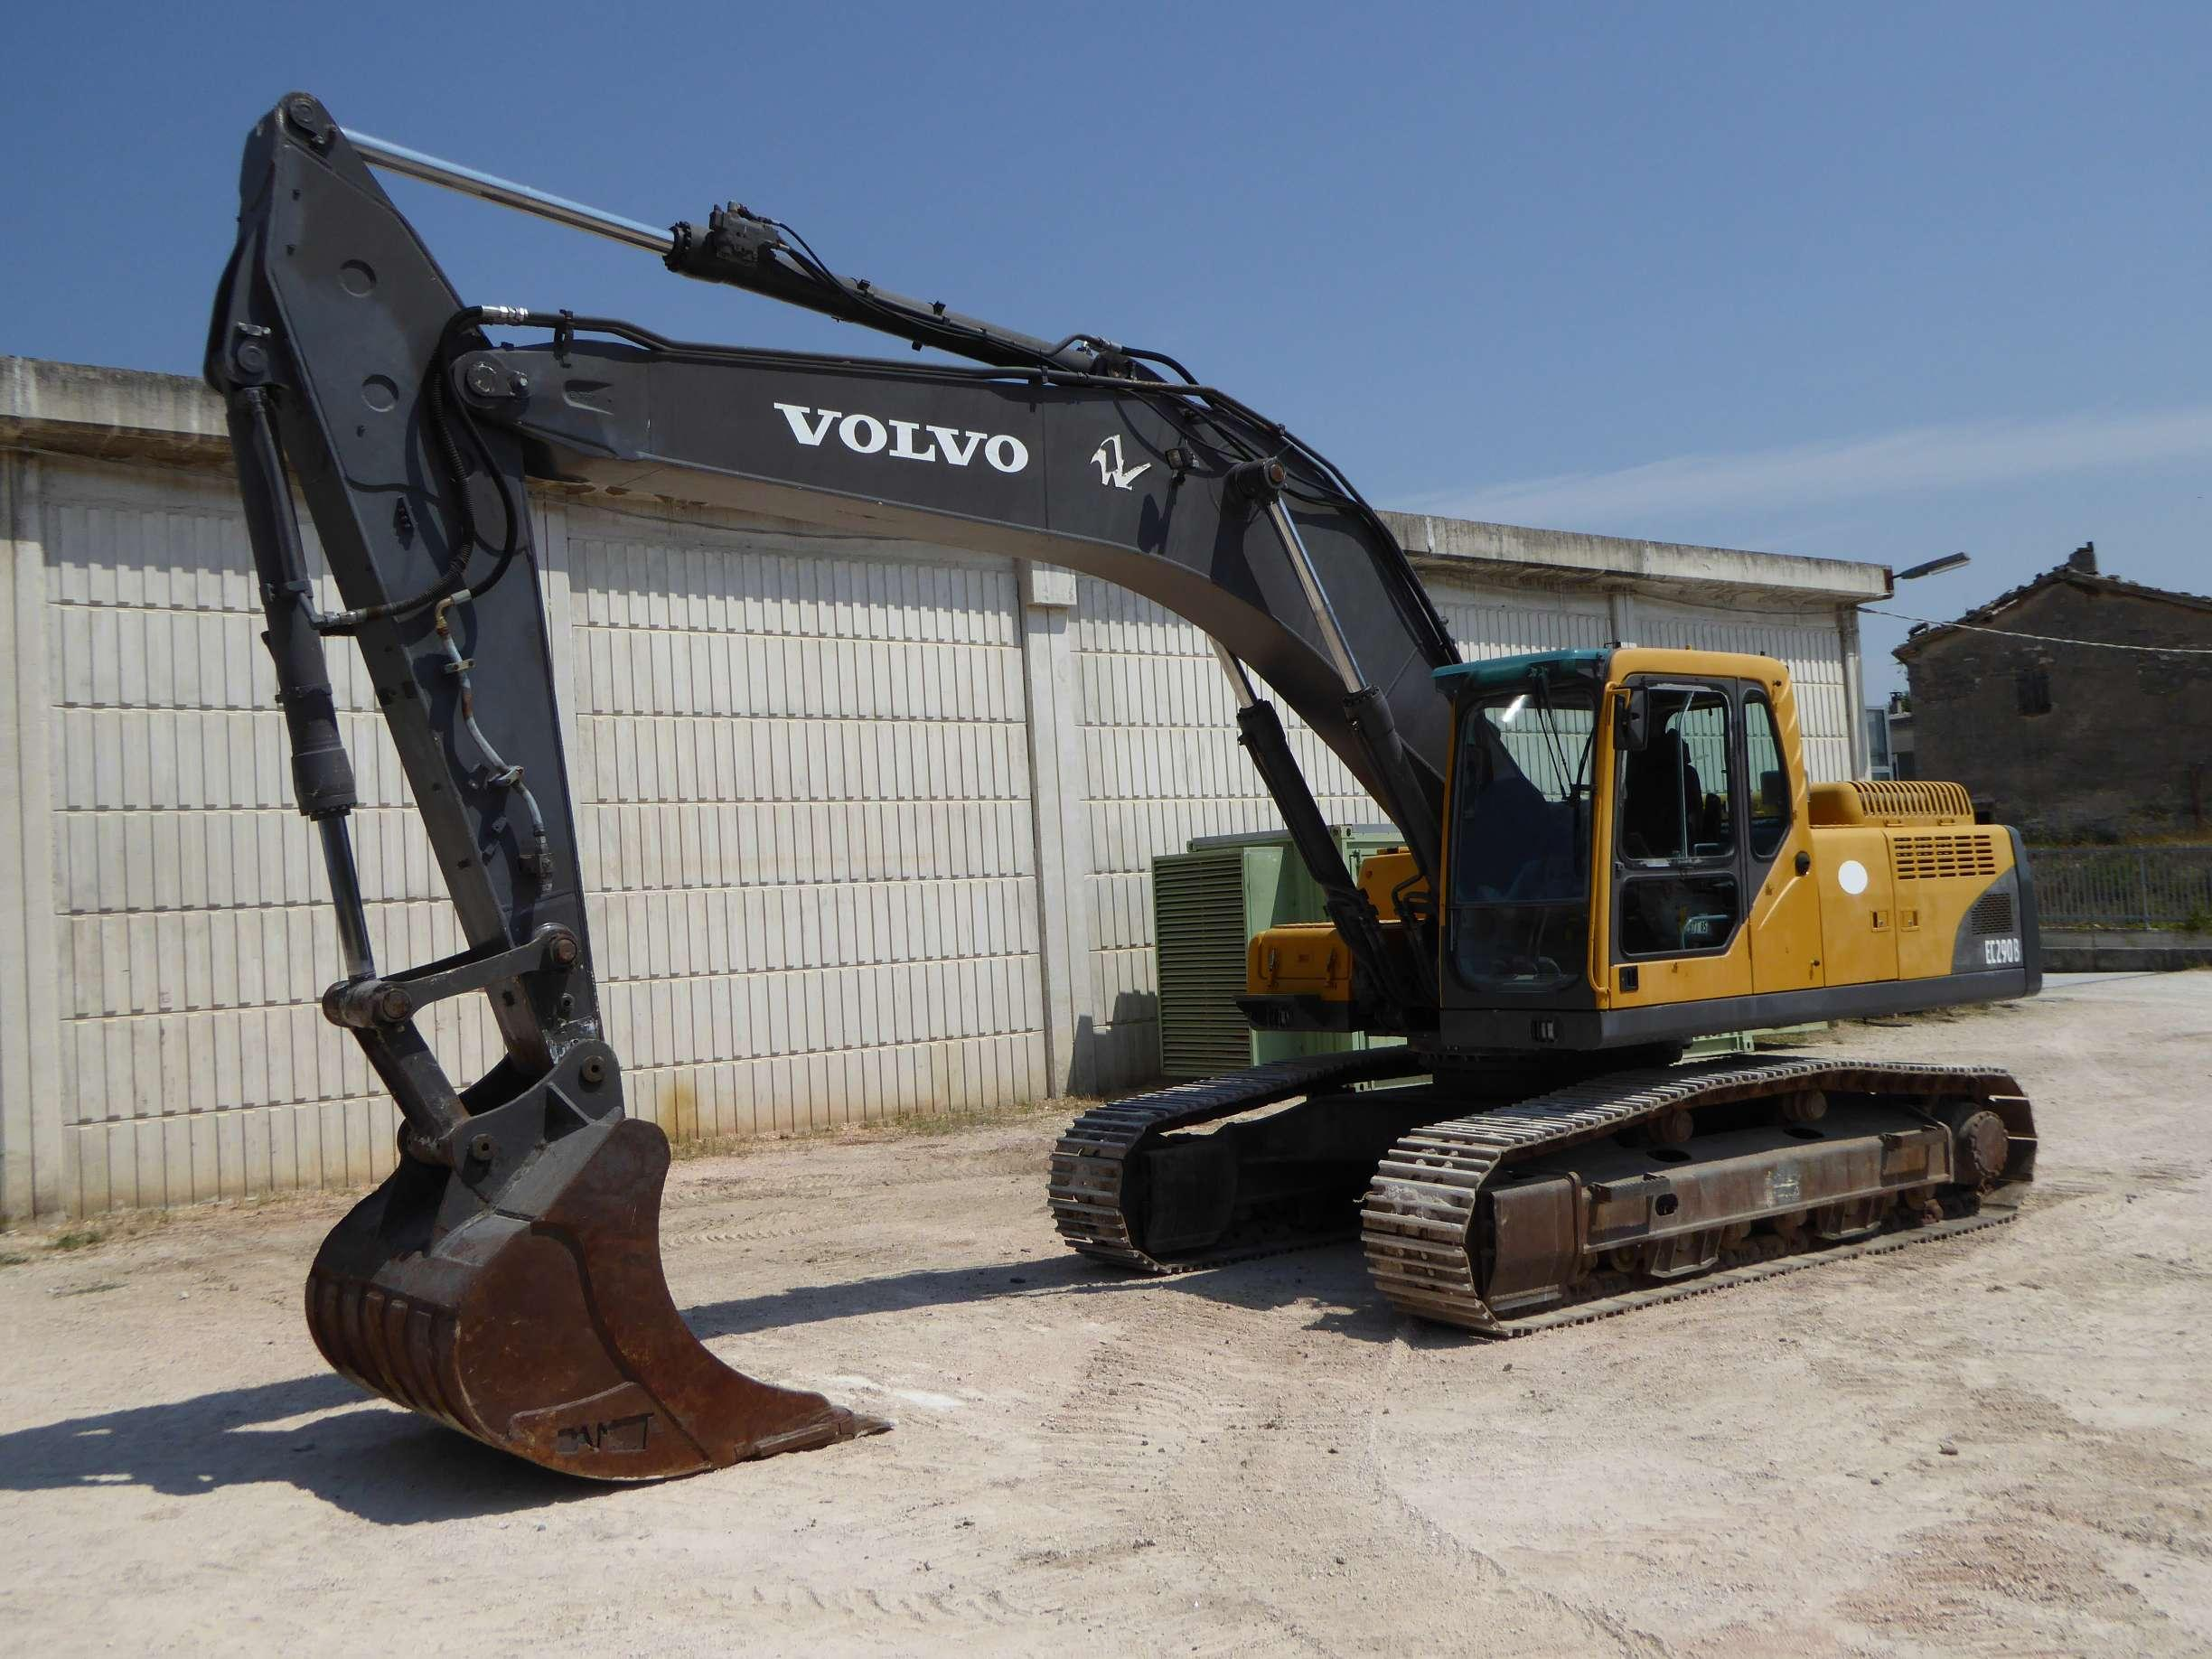 caterpillar what the volvo to halllot backhoe equipment at see g terramac w in gold and booth conexpo construction cex lf